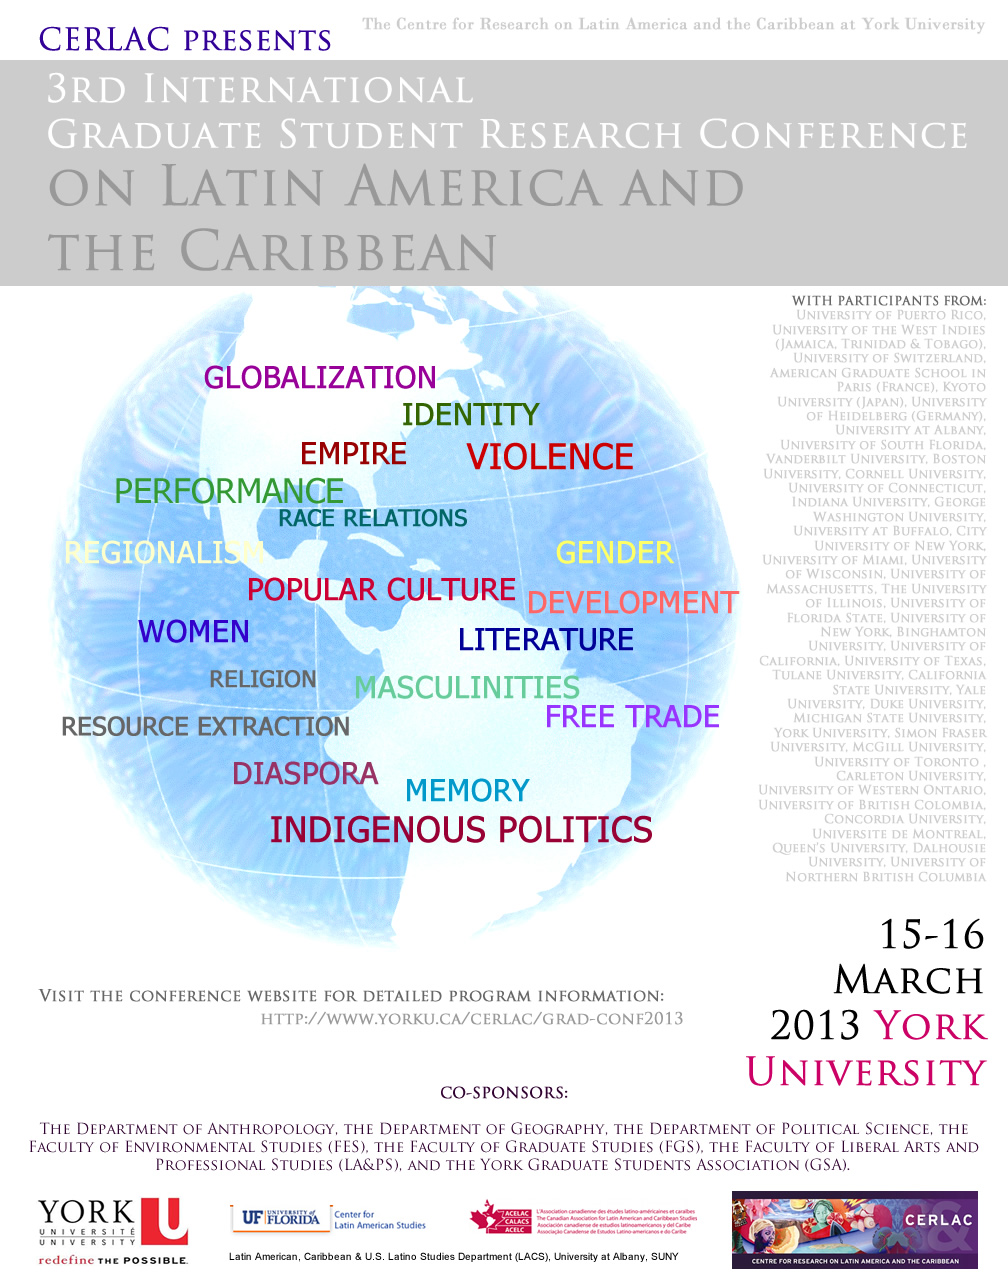 3rd International Graduate Student Research Conference on Latin America & the Caribbean 2